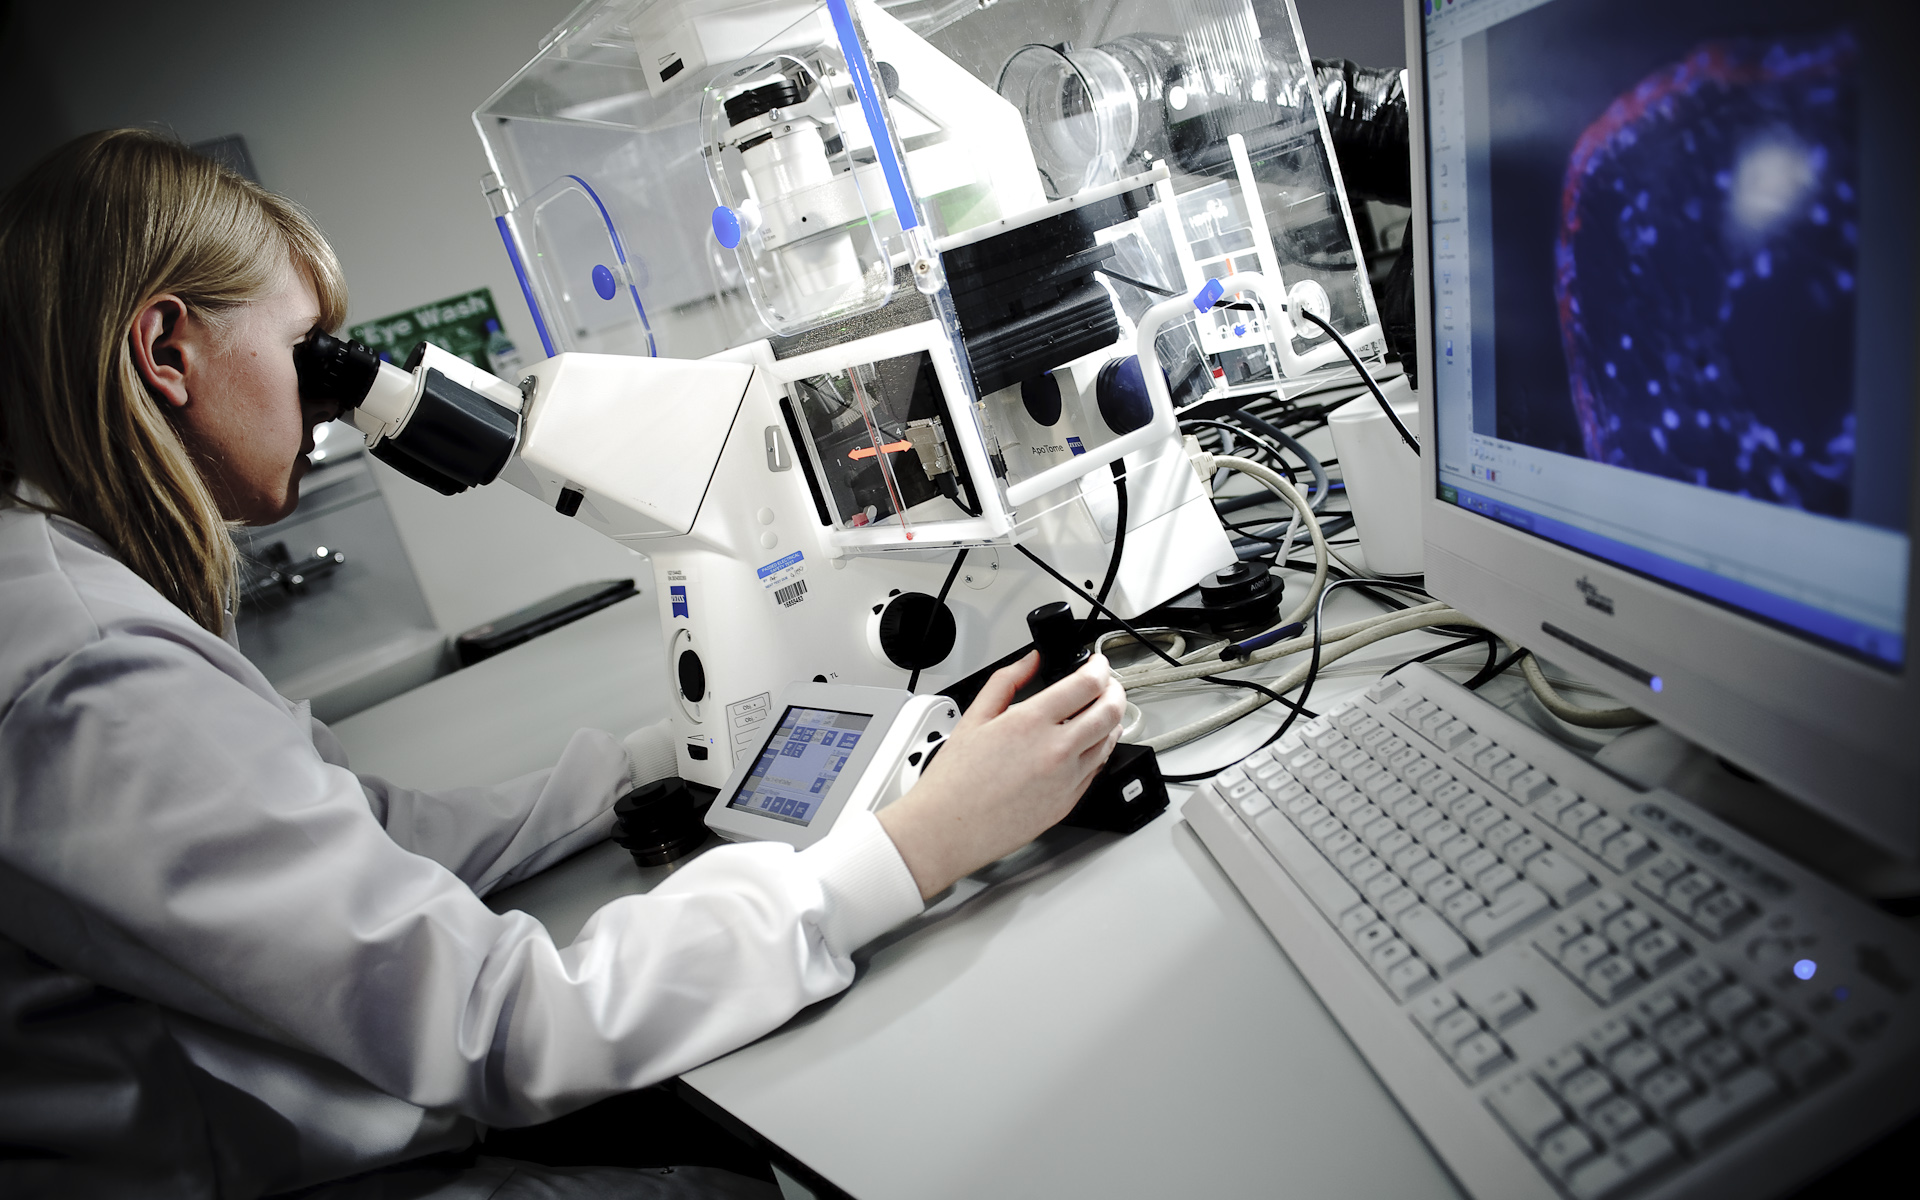 female science student at powerful microscope in science lab